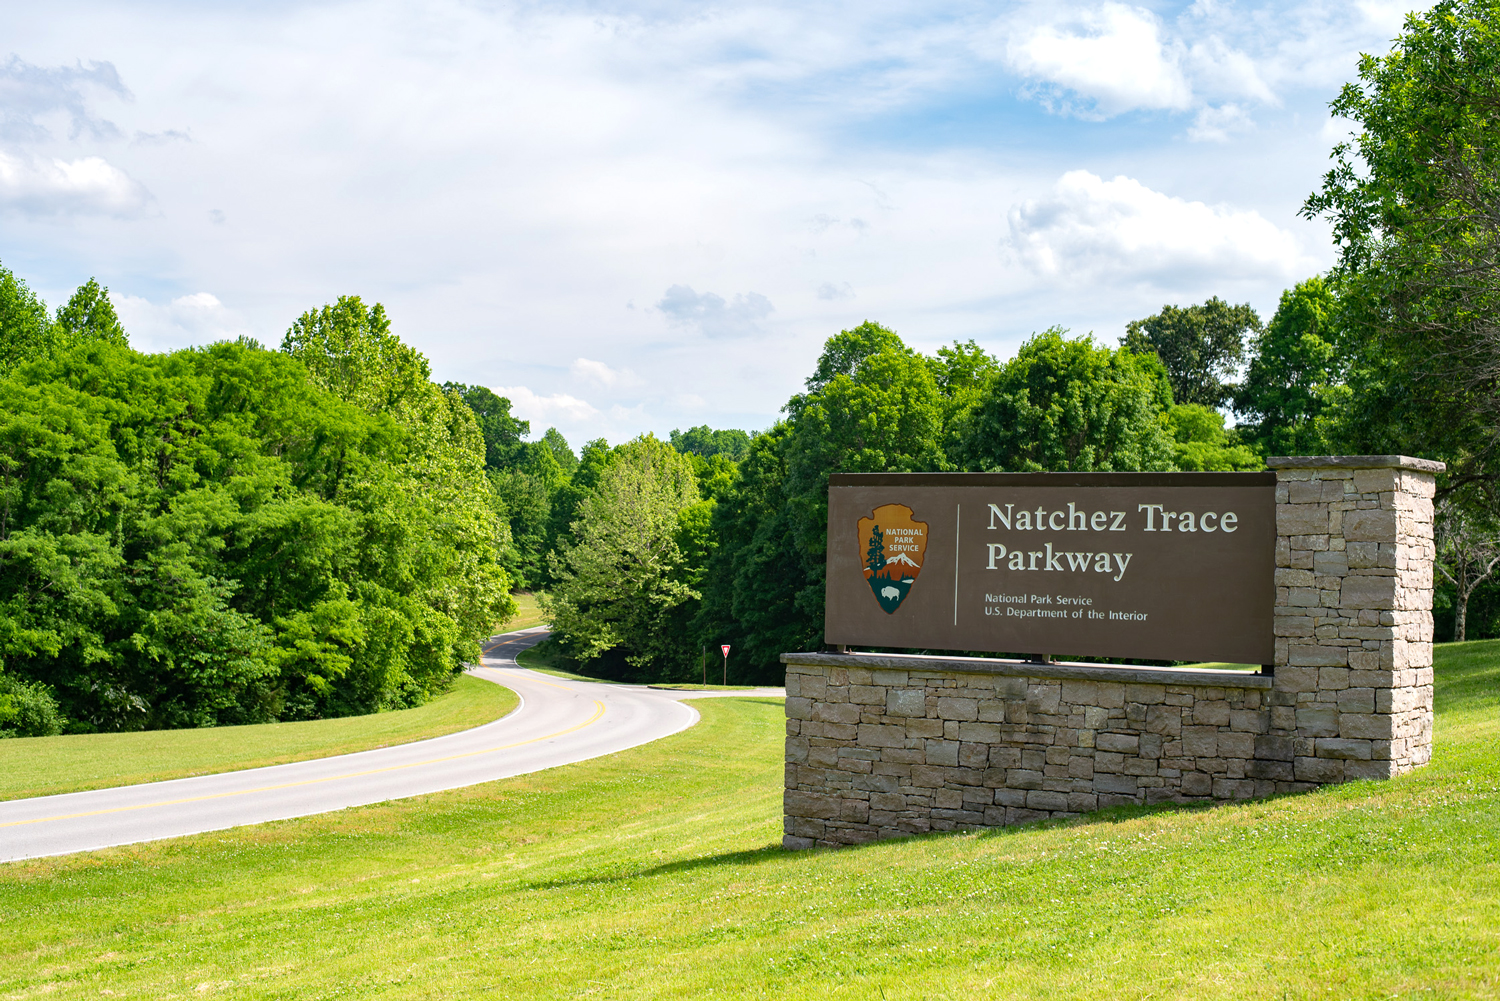 SIgn at the beginning of the Natchez Trace. Ultimate planning guide to driving the Natchez Trace